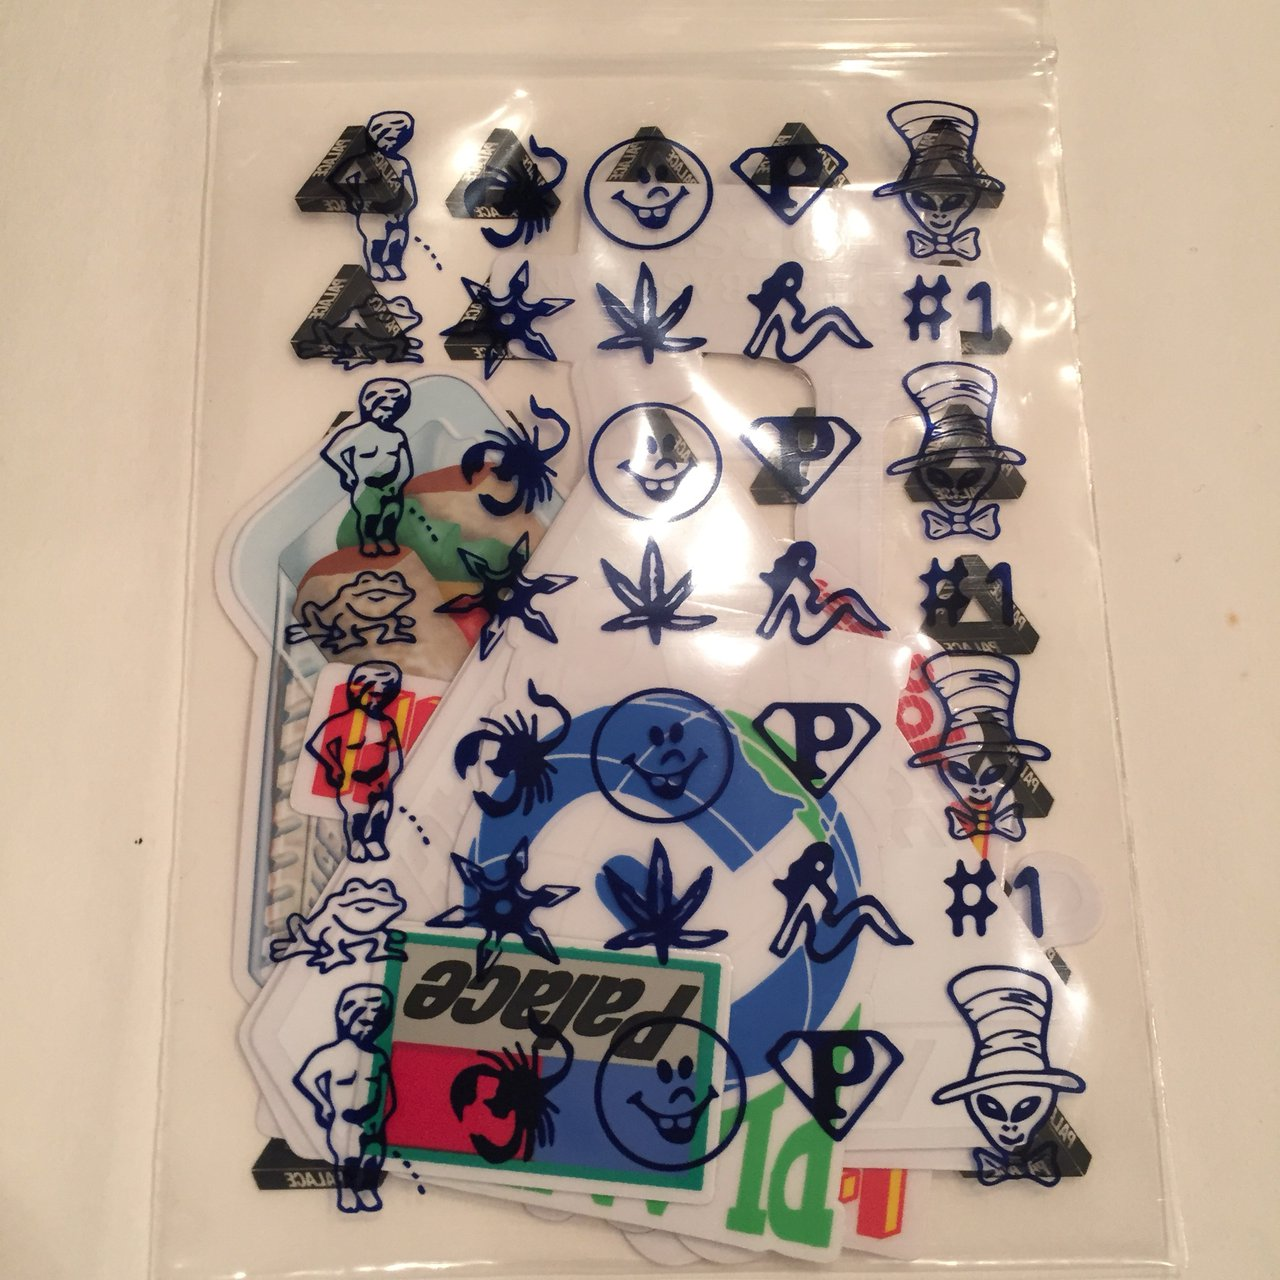 db443c8e6f9a Palace Sticker Pack Brand New (Never Opened) Msg with - Depop